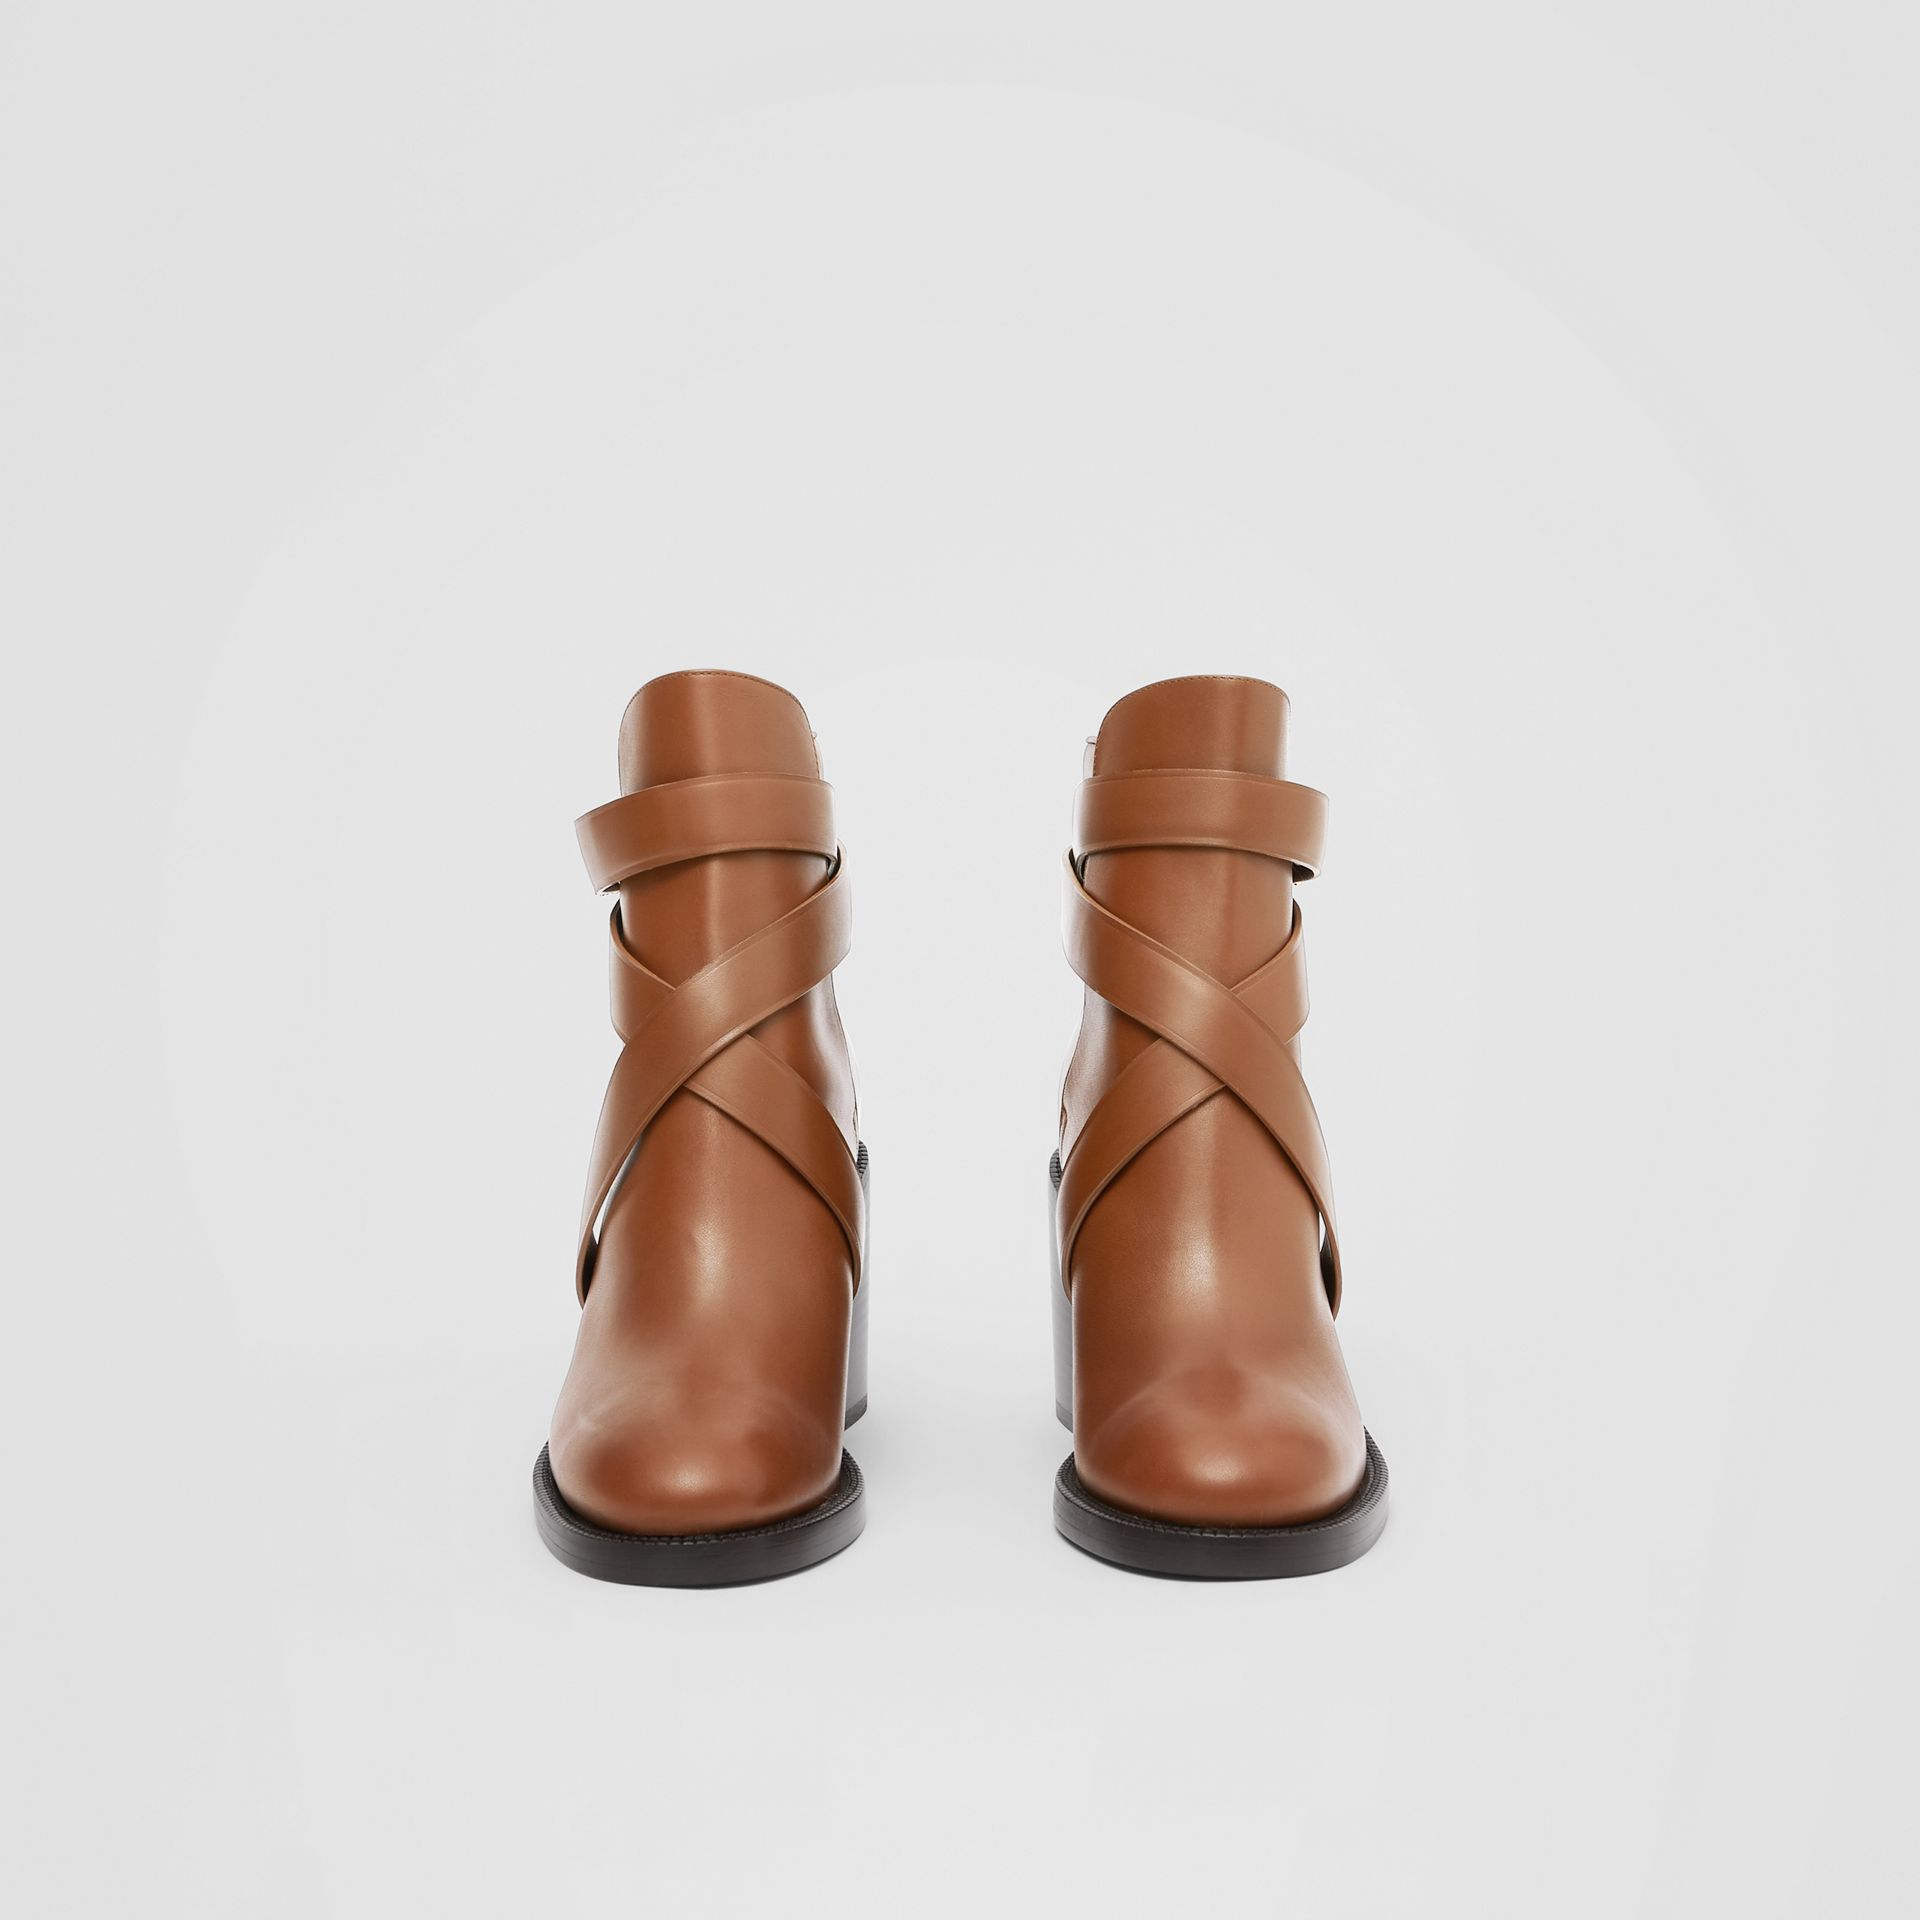 Monogram Motif Leather Ankle Boots in Tan - Women | Burberry - gallery image 2